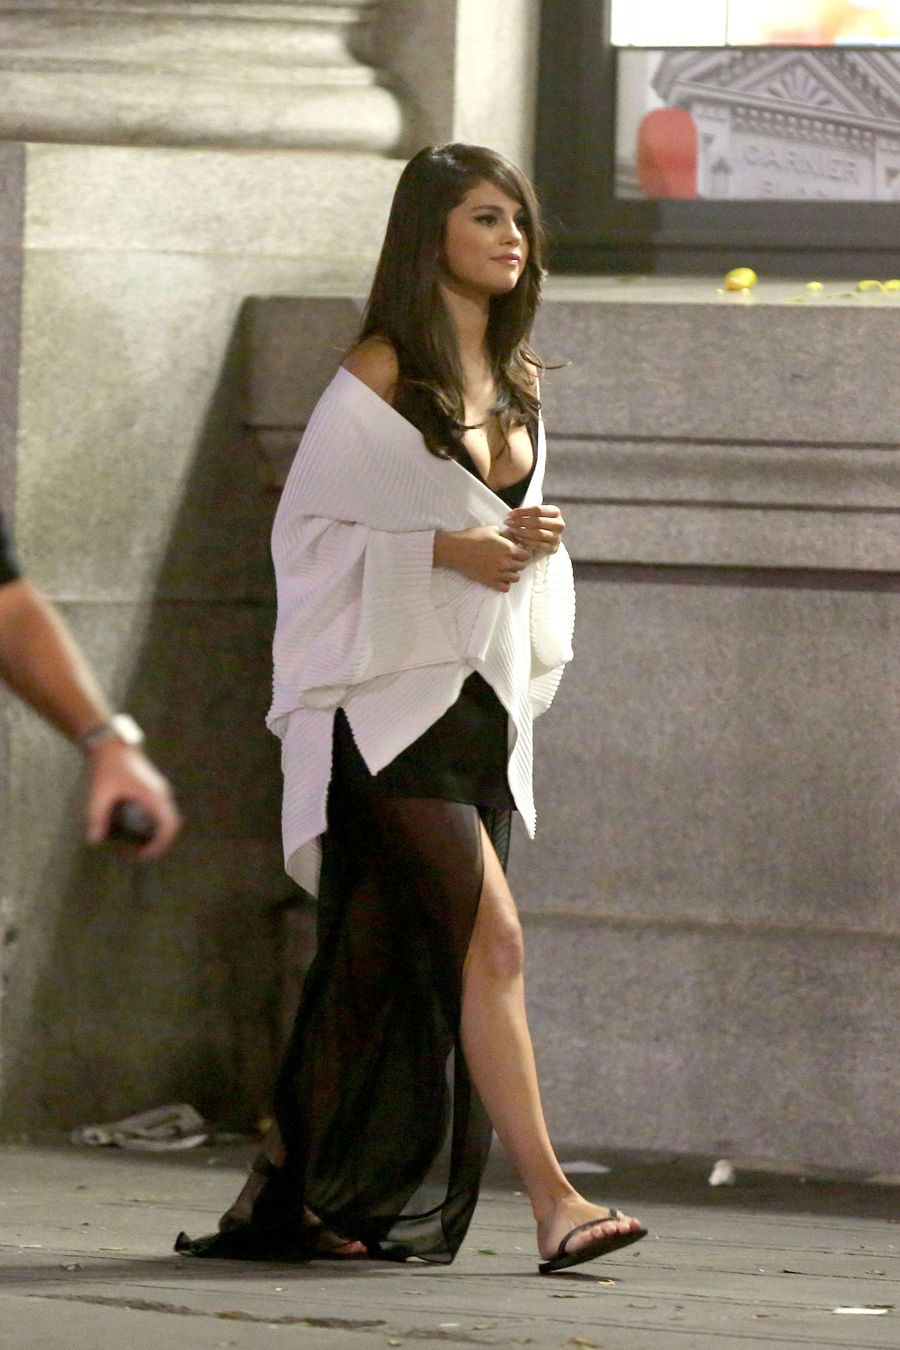 Selena Gomez - Filming 'Same Old Love' Music Video